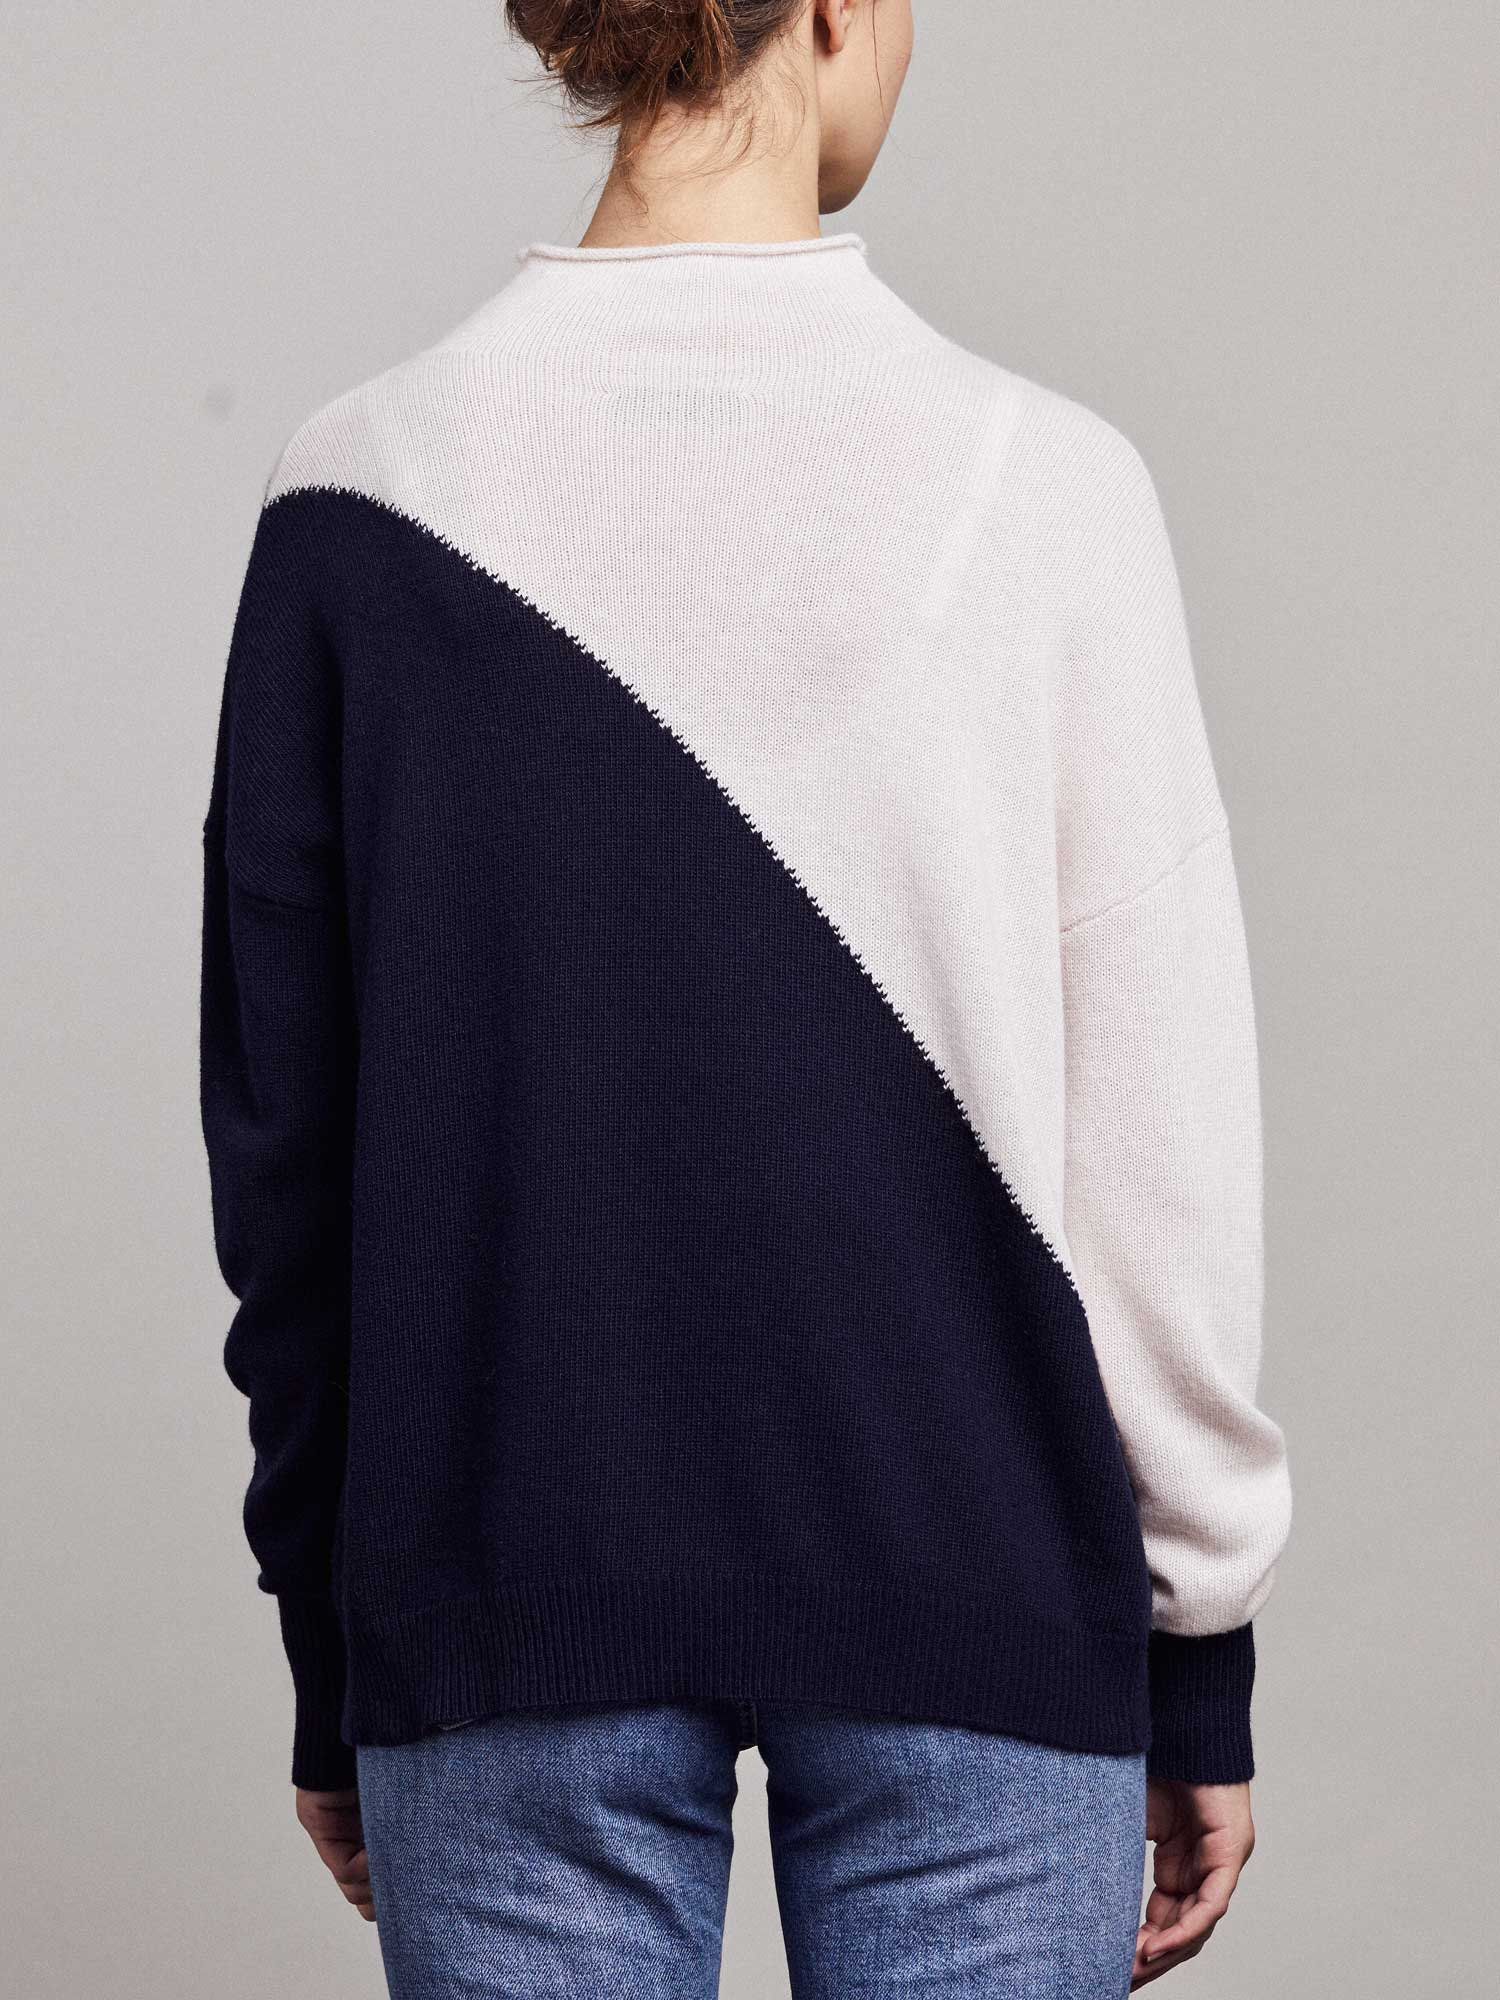 Chloe Jumper – Yacht/Babe by LAM on curated-crowd.com